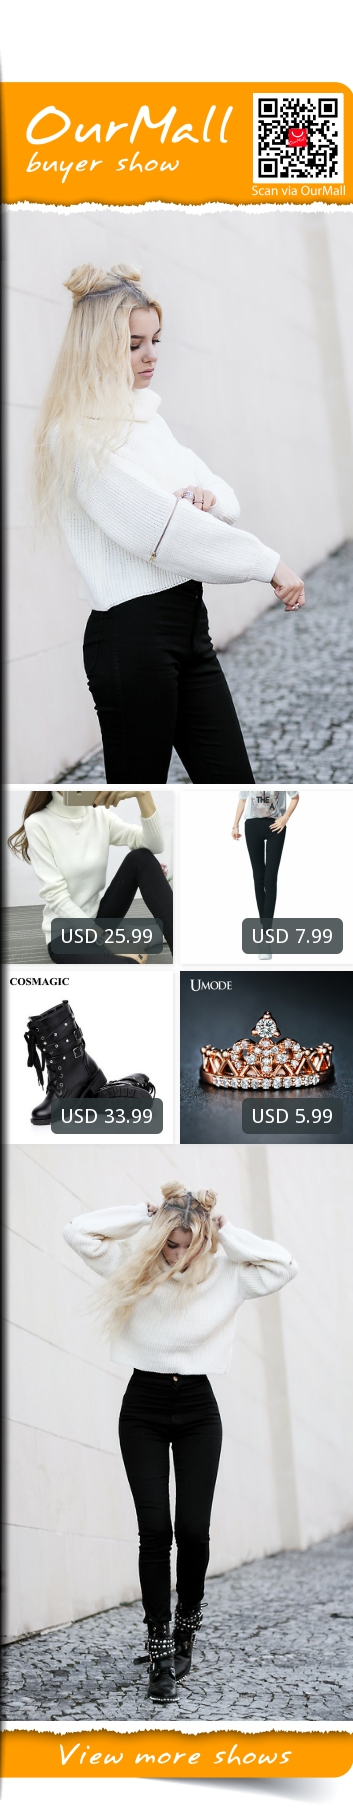 This is Kristina Dolinskaya's buyer show in OurMall;  1.Women Turtleneck Sweater 2016 Winter Warm Pullover White Pink 8 Colors Jumper High 2.work pants High stretch cotton ladies pencil pants black White 3.Women Buckle Winter Motorcycle Martin Boots British Style Gothic Punk Thick W... please click the picture for detail. http://ourmall.com/?YZbuem #sweater #sexysweater #sweaterforwomen #sweaterforgirls #springsweater #graysweater #cutesweater #refashionsweater